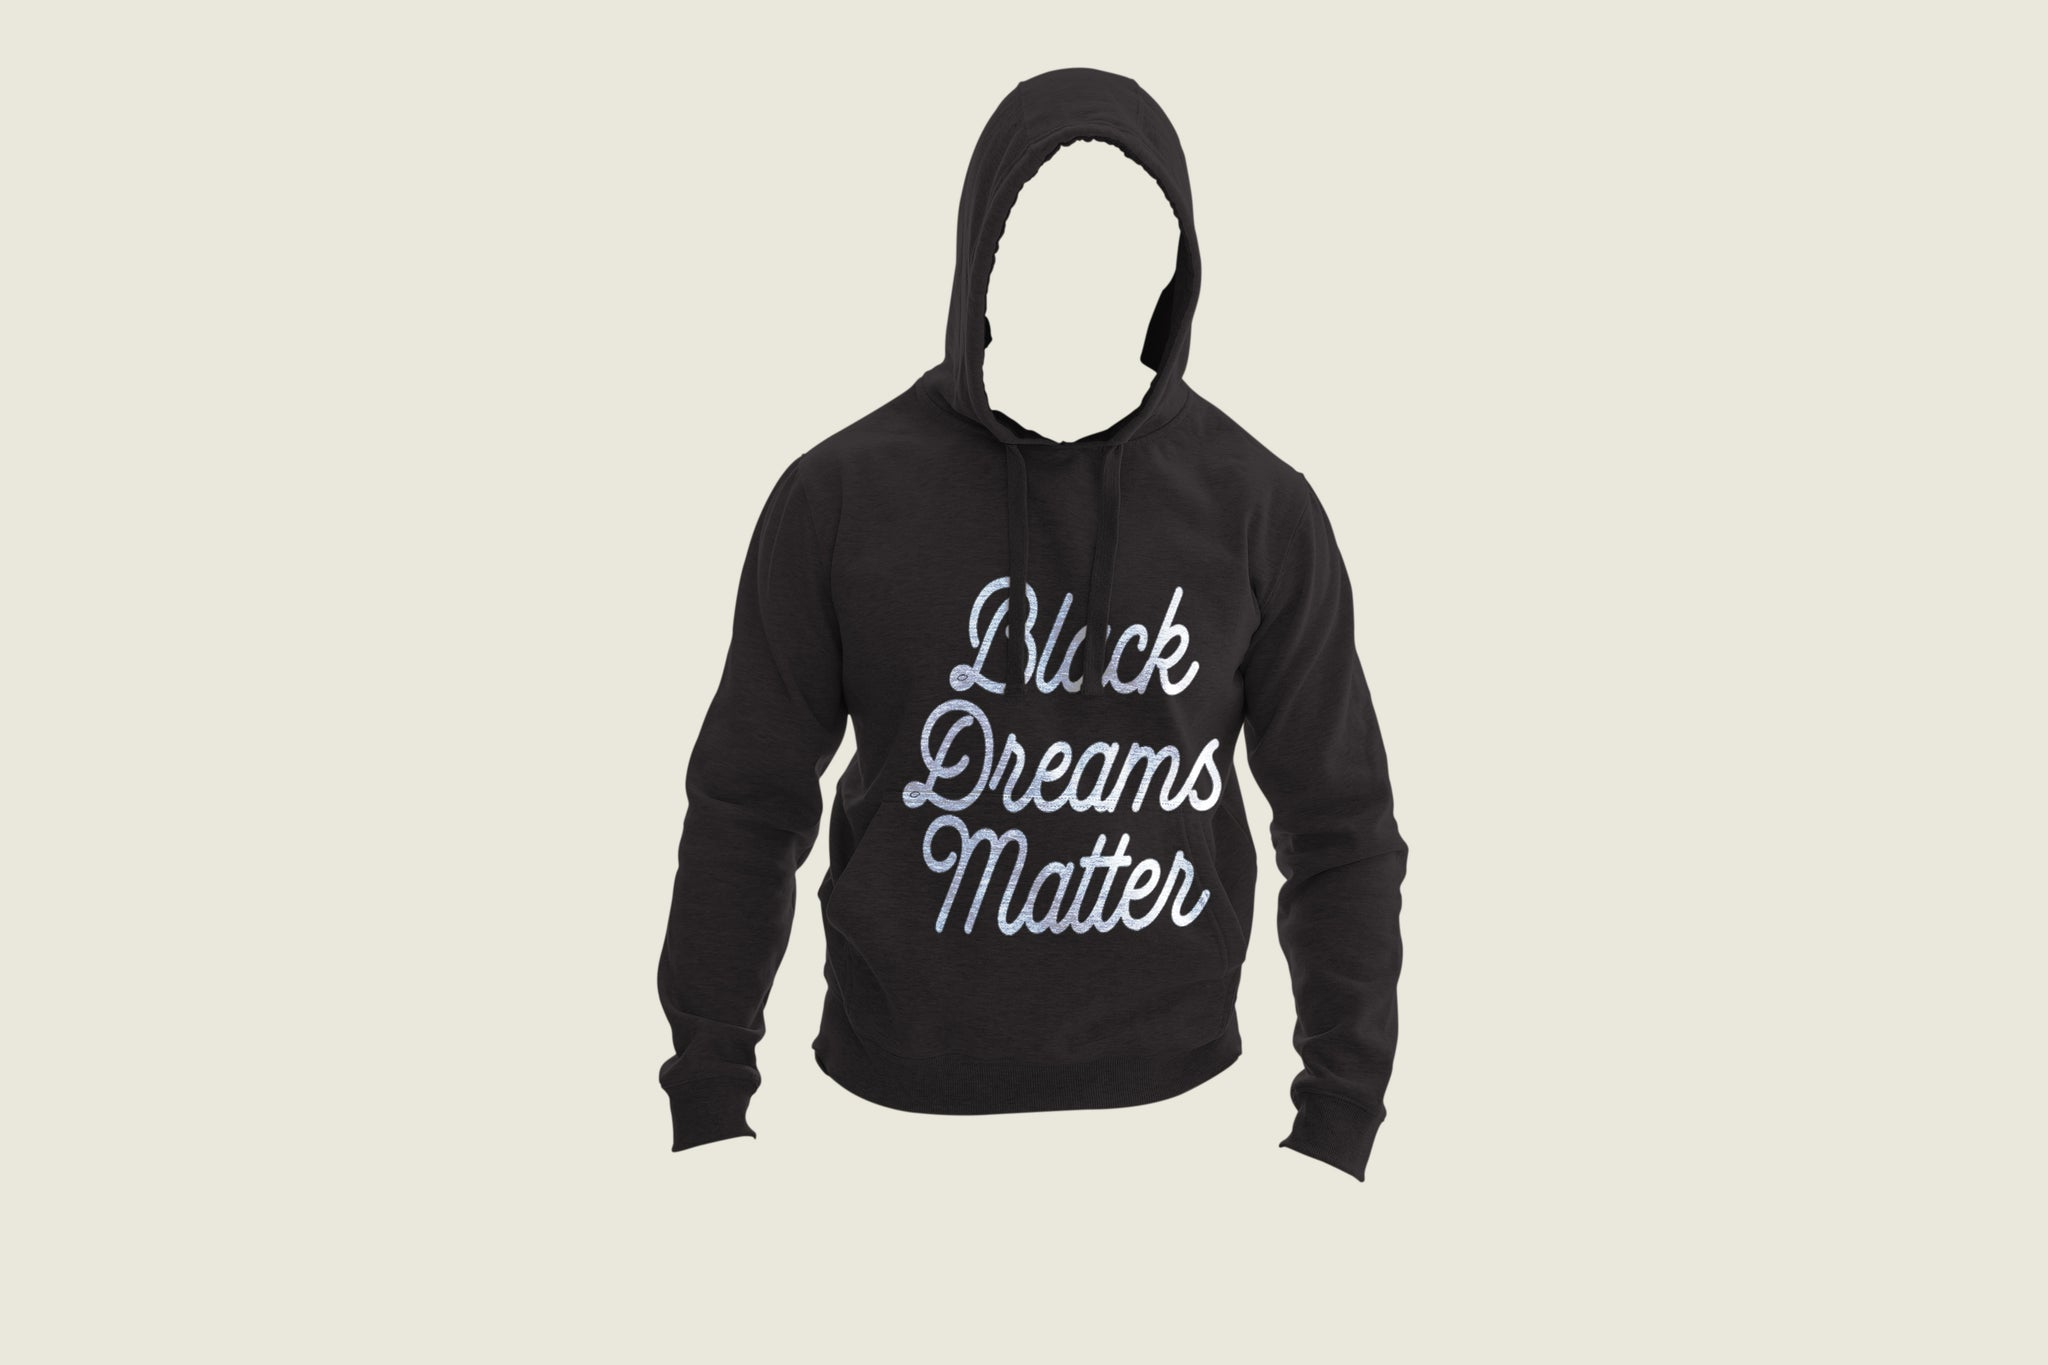 Black Dreams Matter Hoodie - Black